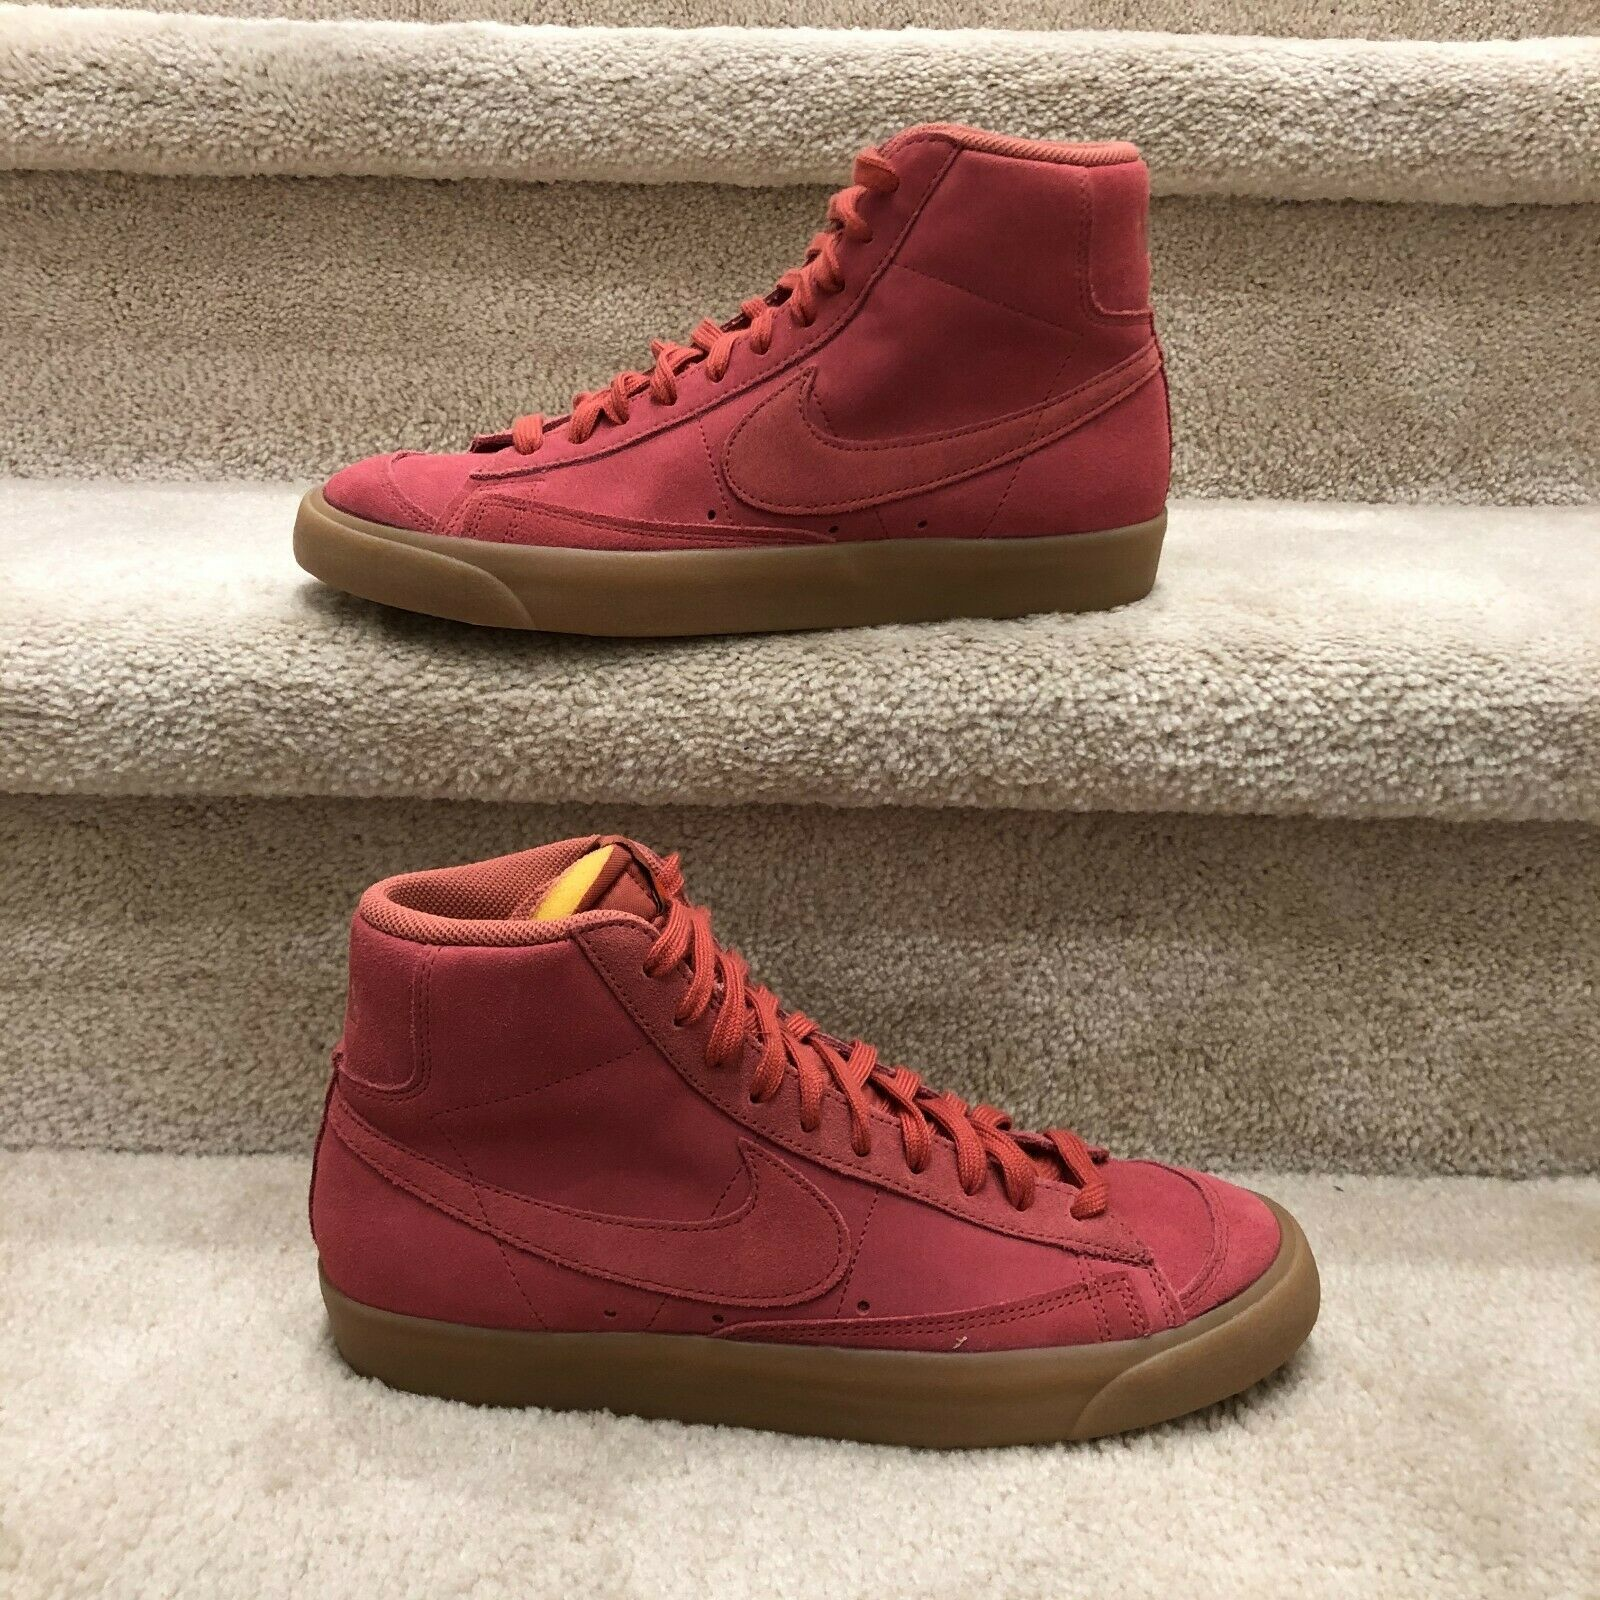 Primary image for Nike Blazer Mid 77 Suede Light Redwood MEN'S ATHLETIC SNEAKER CI1172-800